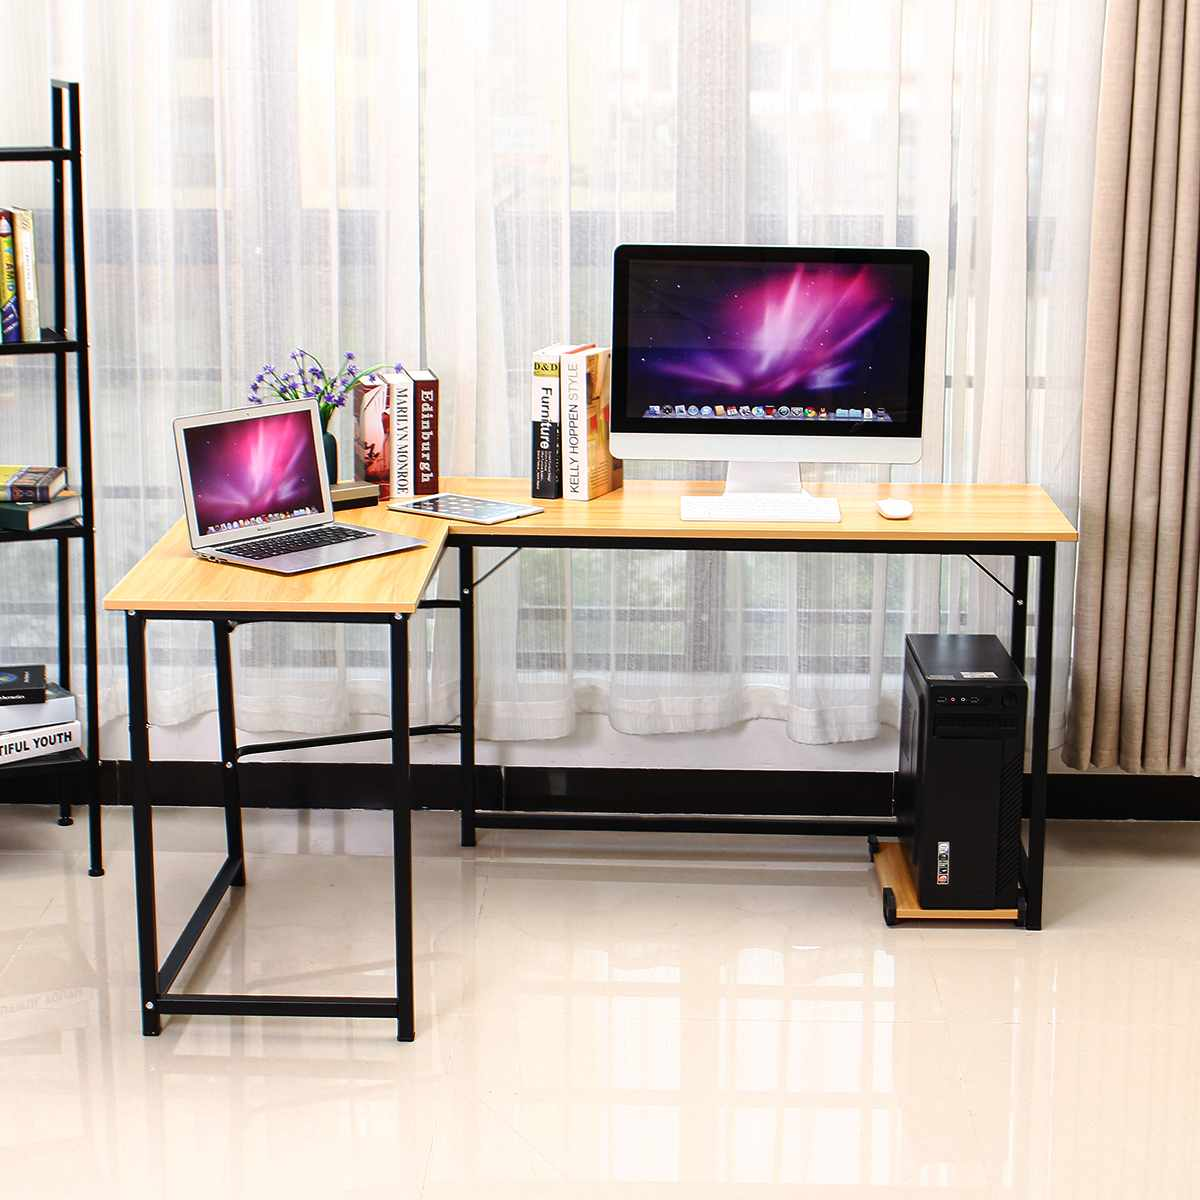 Wooden Office Computer Writing Desk Home Gaming Pc Furnitur L Shape Corner Study Computer Table Laptop Desk Laptop Table Buy At The Price Of 84 08 In Aliexpress Com Imall Com